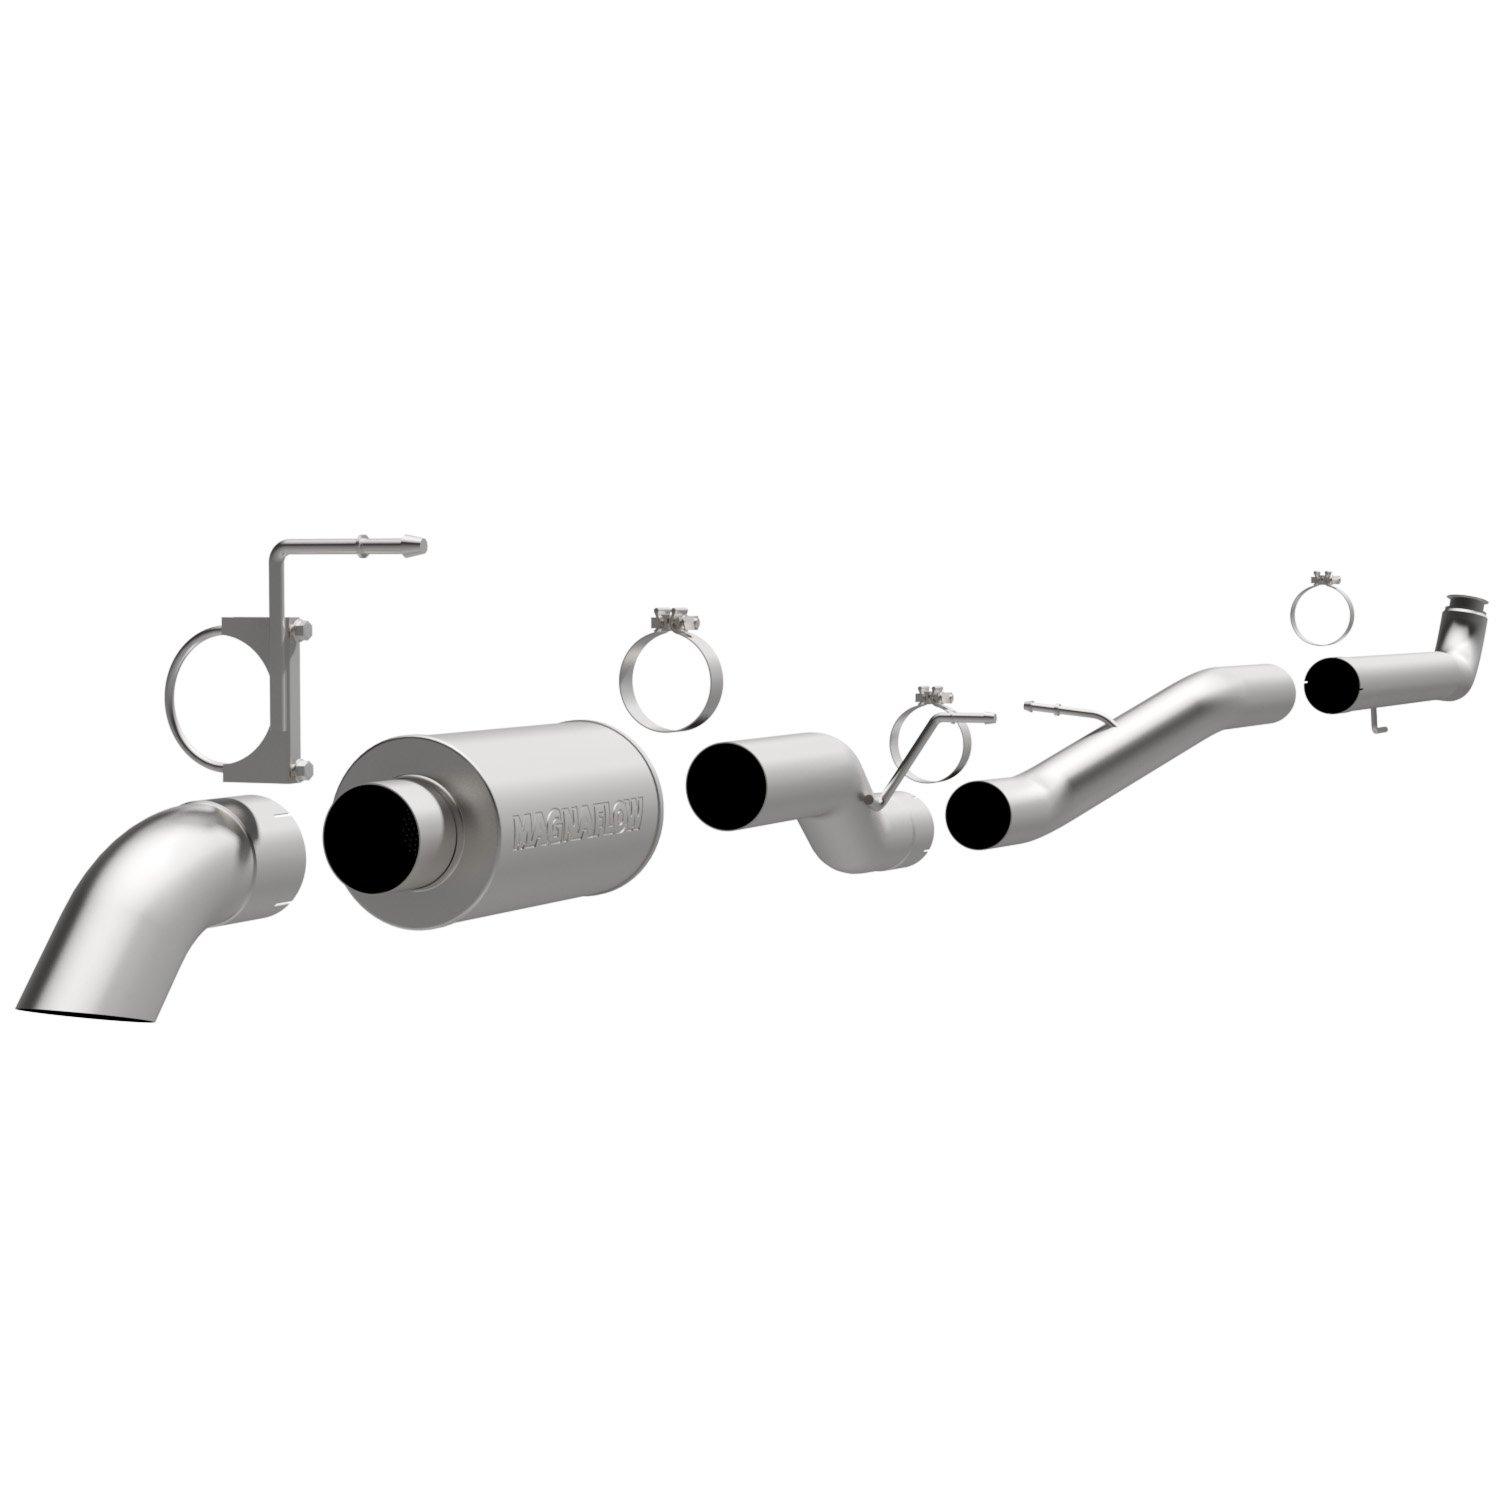 MagnaFlow Off-Road Pro Exhaust System